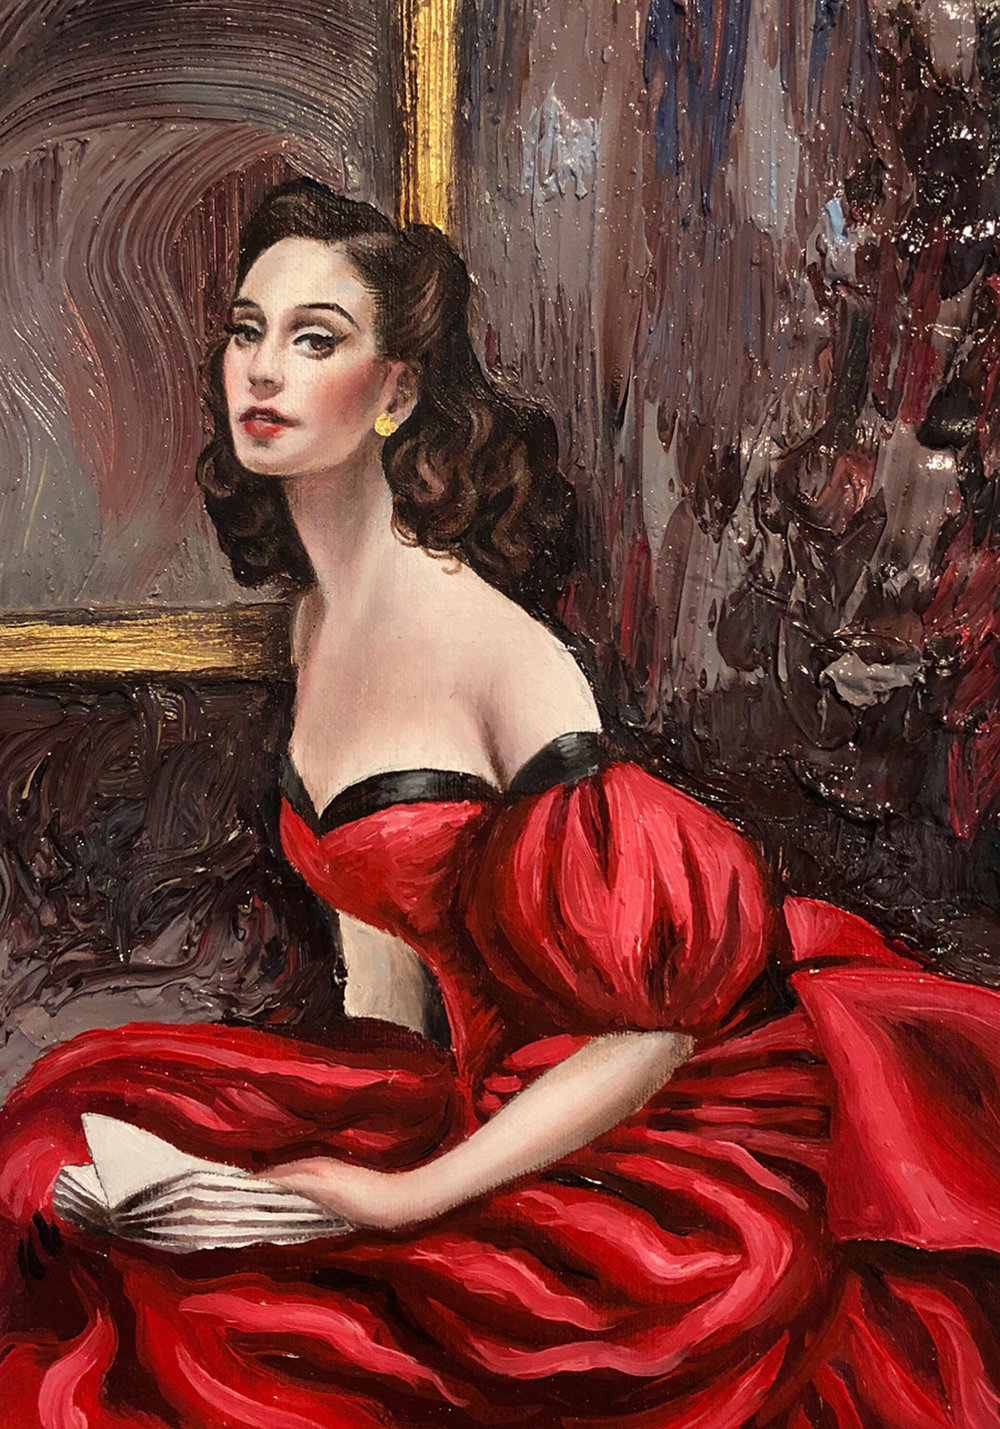 Lady in Red by Jessica Libor, oil and gold leaf on linen, 5x7.jpg